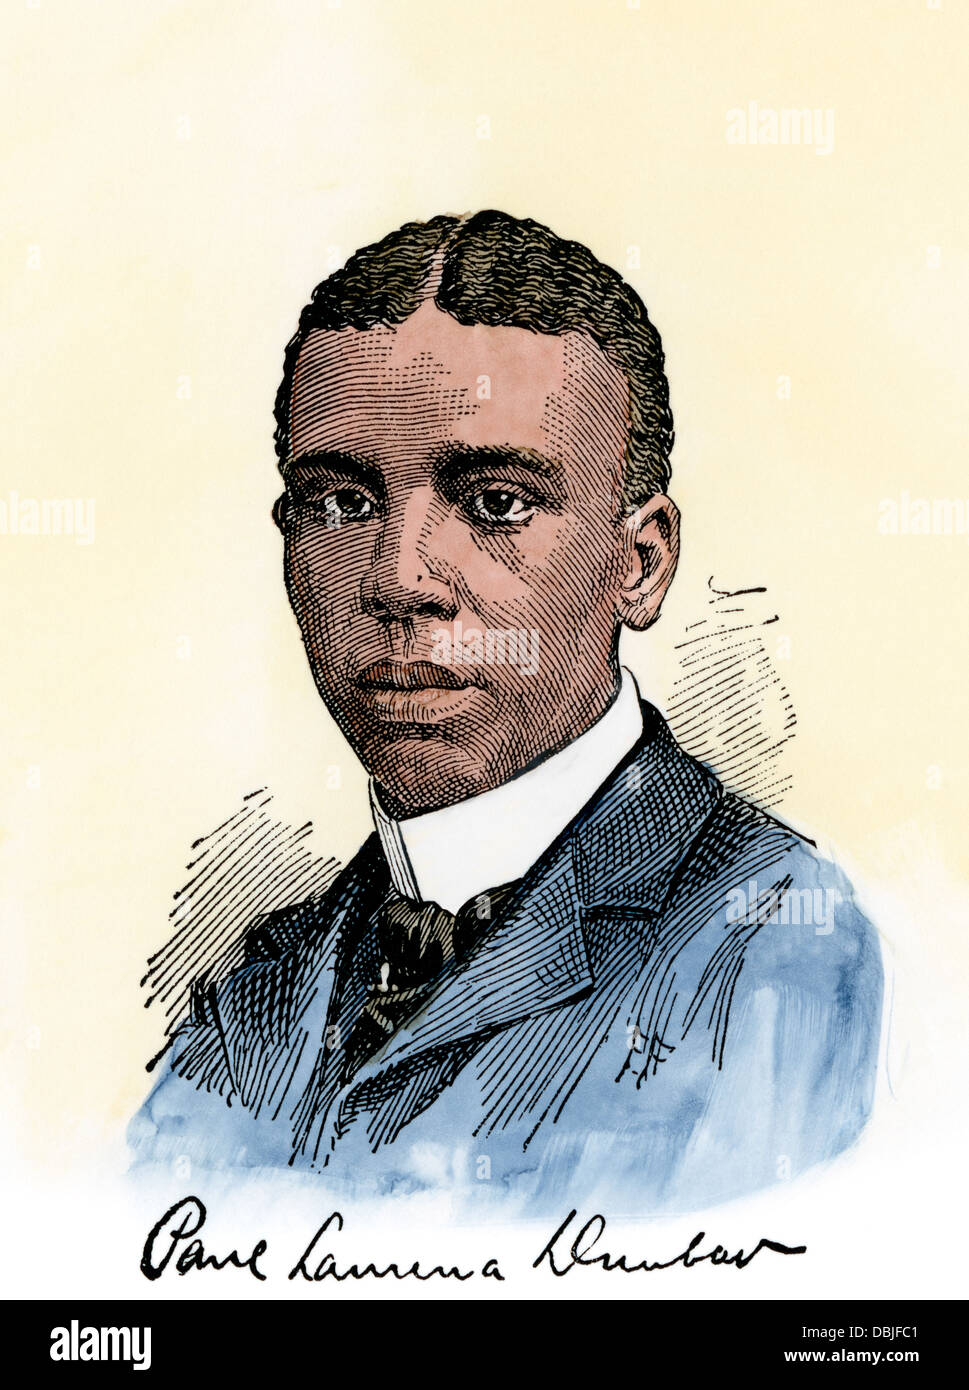 American poet Paul Lawrence Dunbar, with his autograph. Hand-colored woodcut - Stock Image